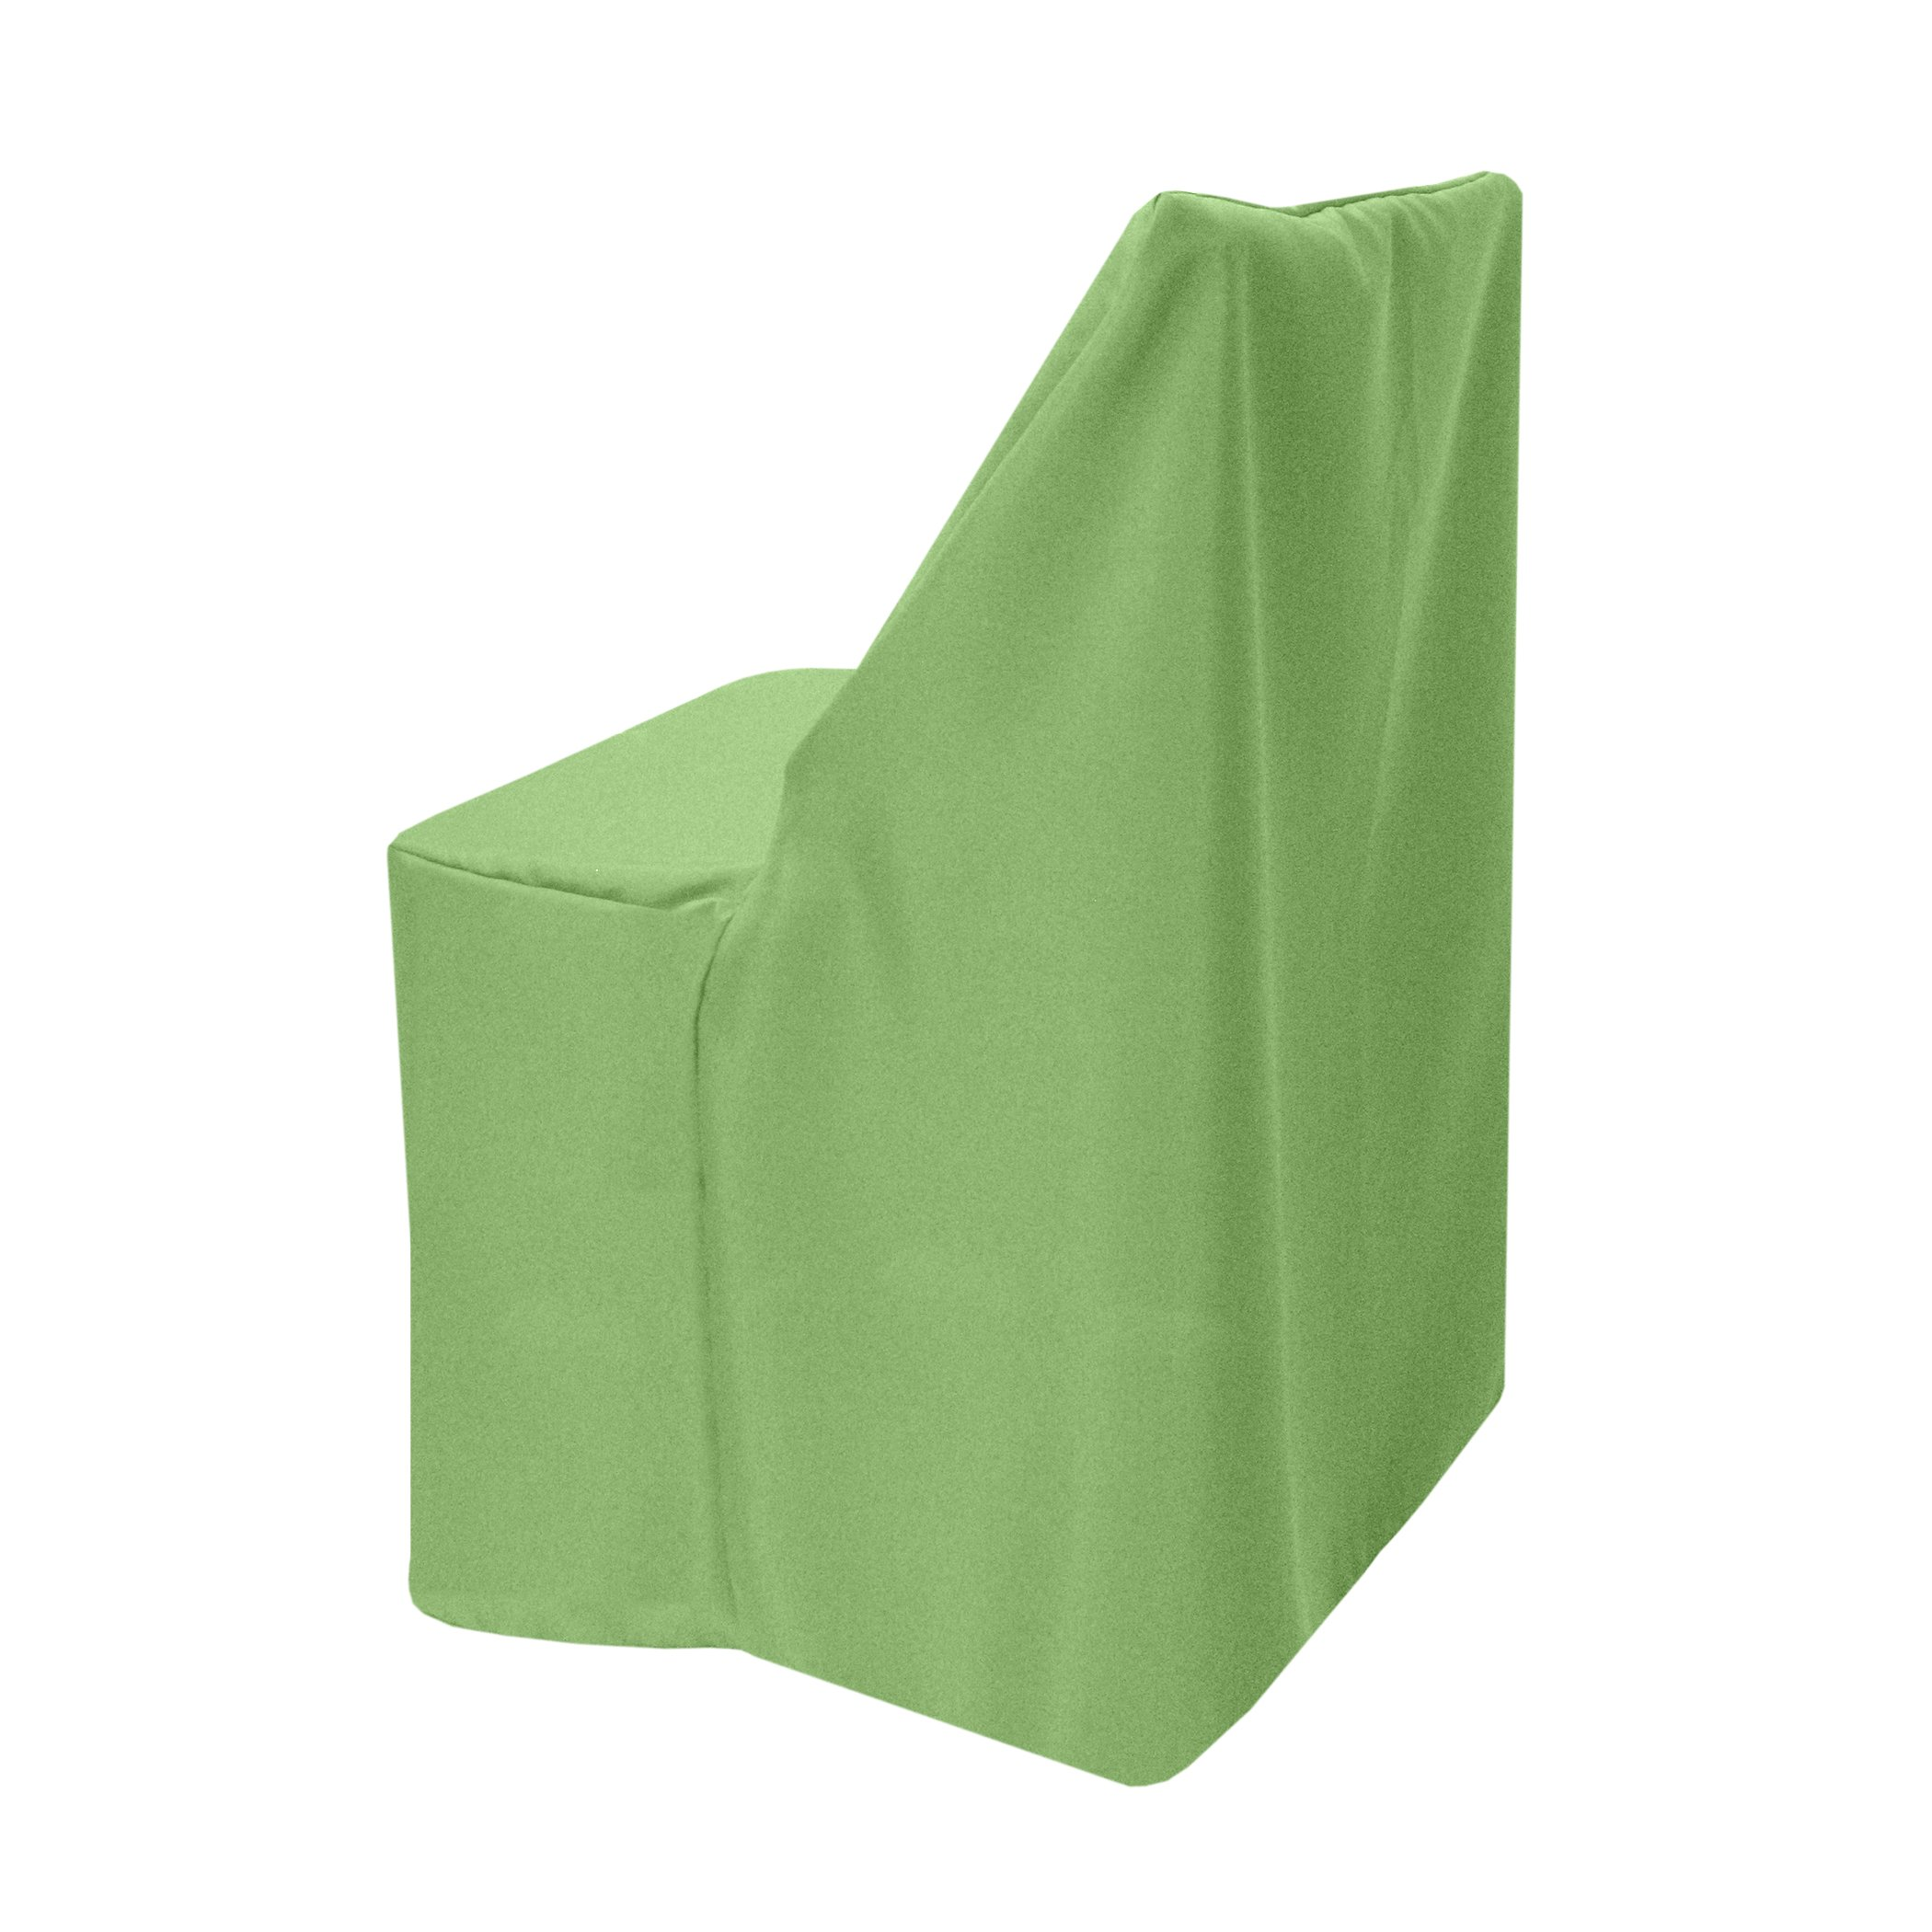 Ultimate Textile (3 Pack) Polyester Folding Chair Cover - for Wood Folding Chairs, Sage Green